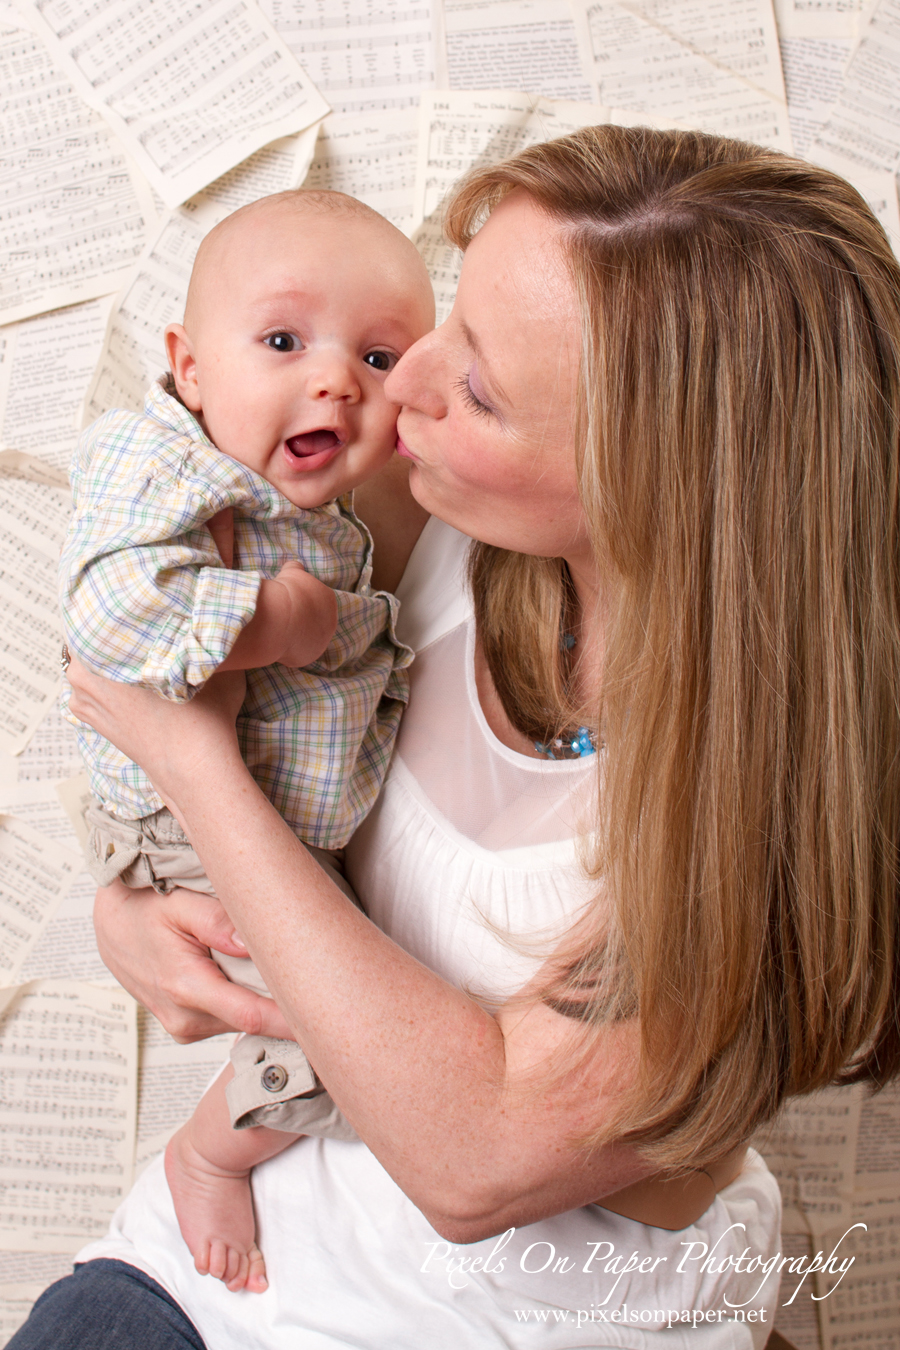 Baby Isaiah with Mom in studio portrait photo